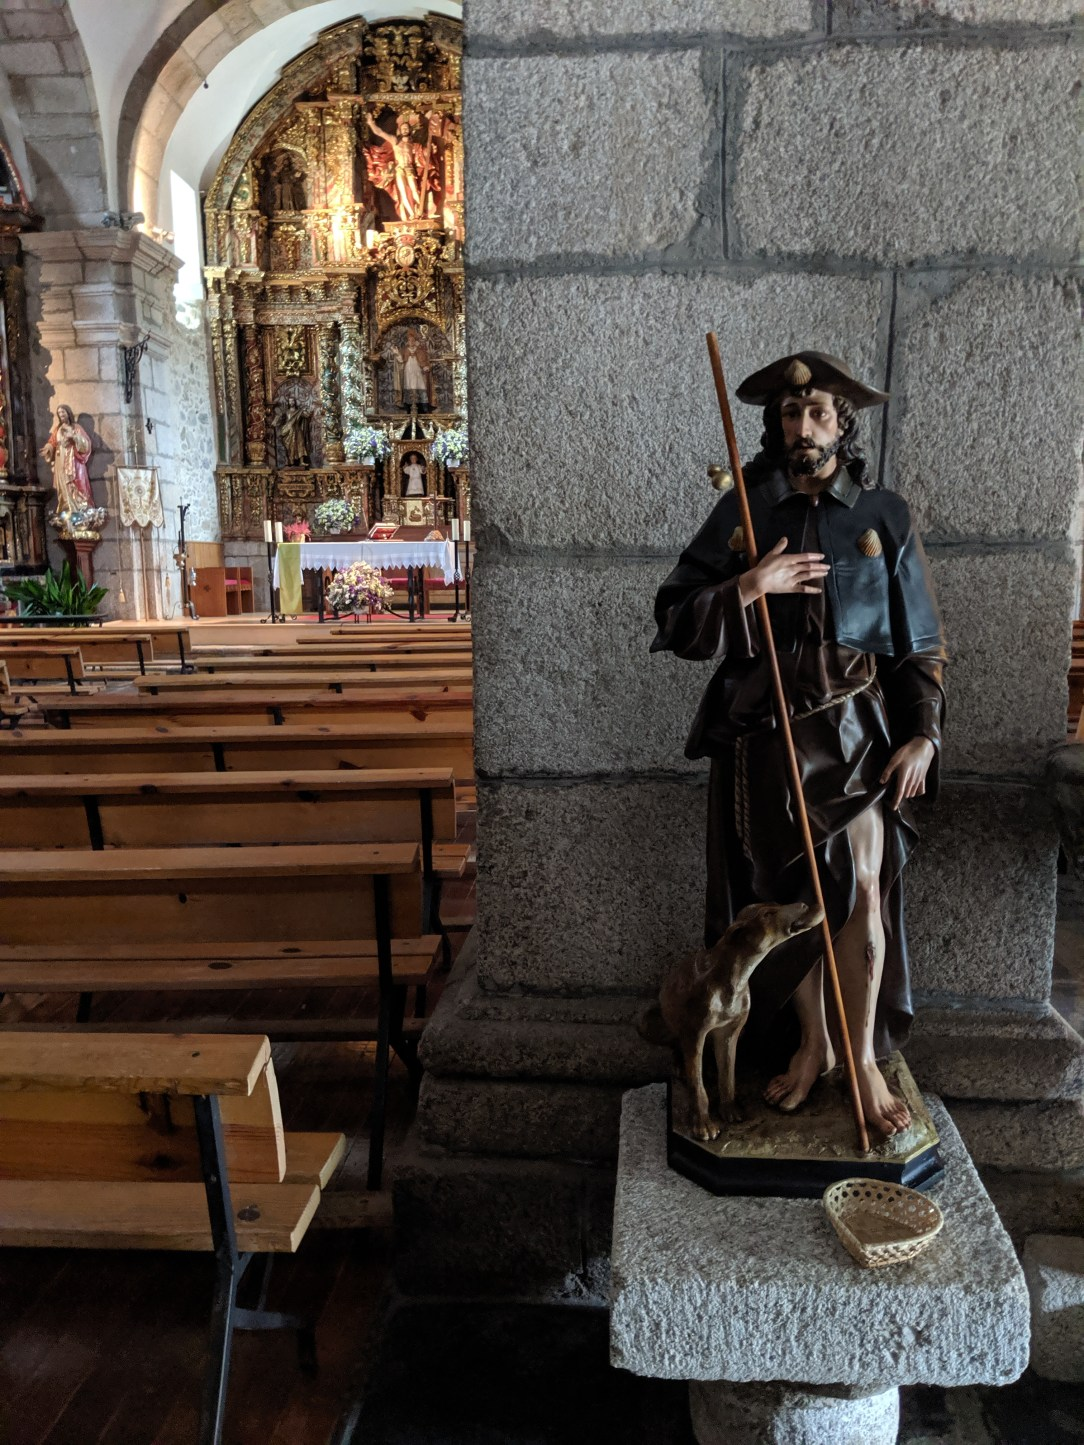 St. James, Santiago, apostle of Jesus, St. james the pilgrim